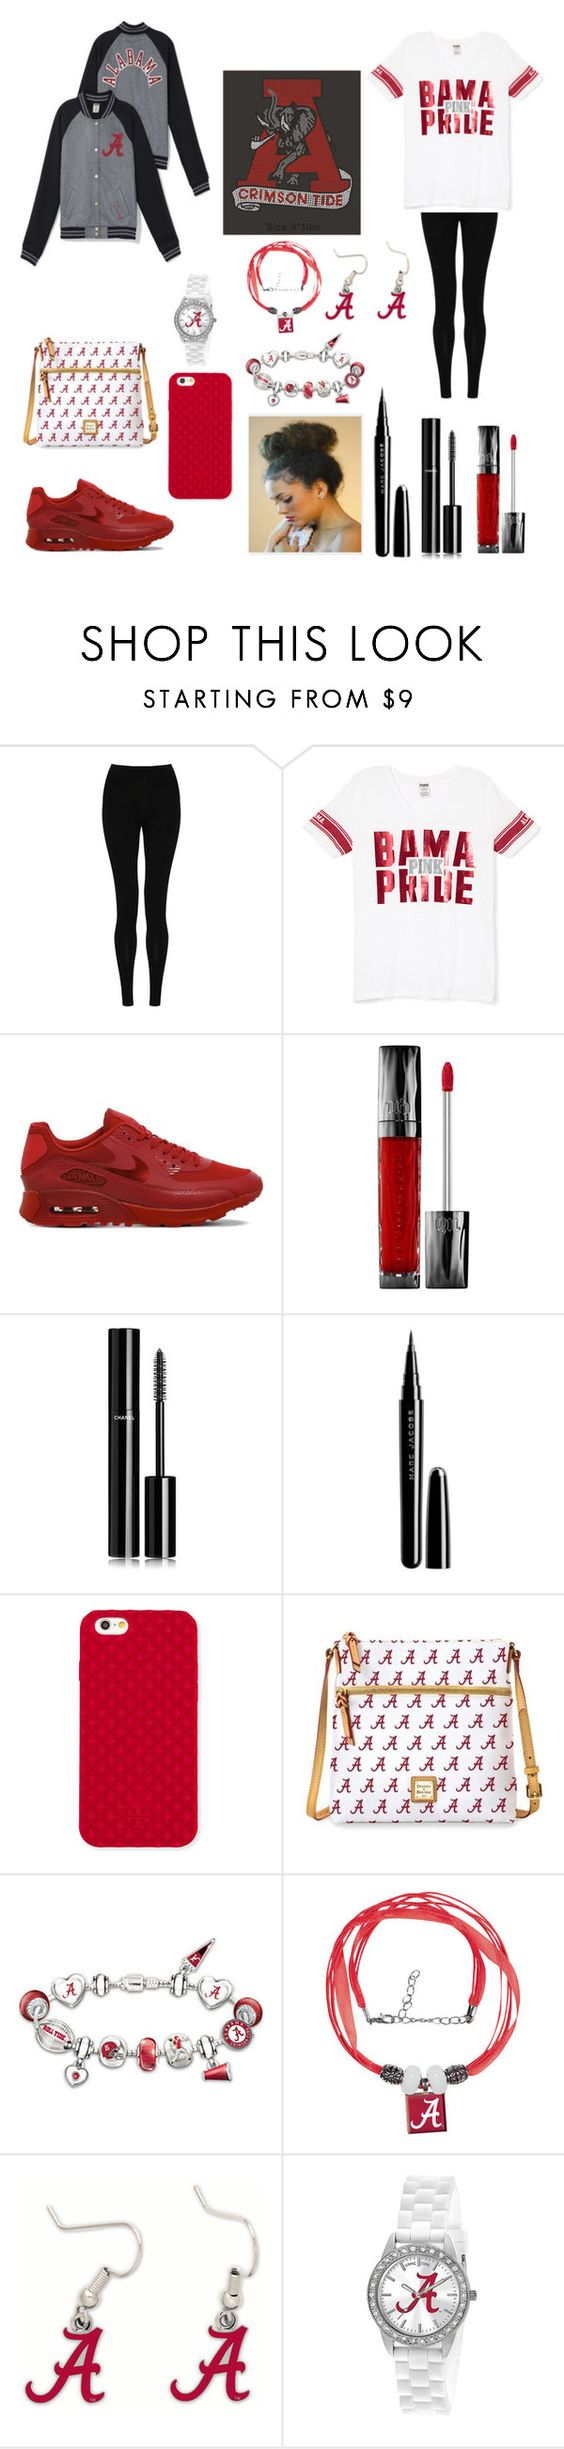 """ROOOLL TIDE!!!"" by tayllorliz-1 ❤ liked on Polyvore featuring M&S Collection, NIKE, Urban Decay, Chanel, Marc Jacobs, Tory Burch, Dooney & Bourke, The Bradford Exchange, WinCraft and Game Time"